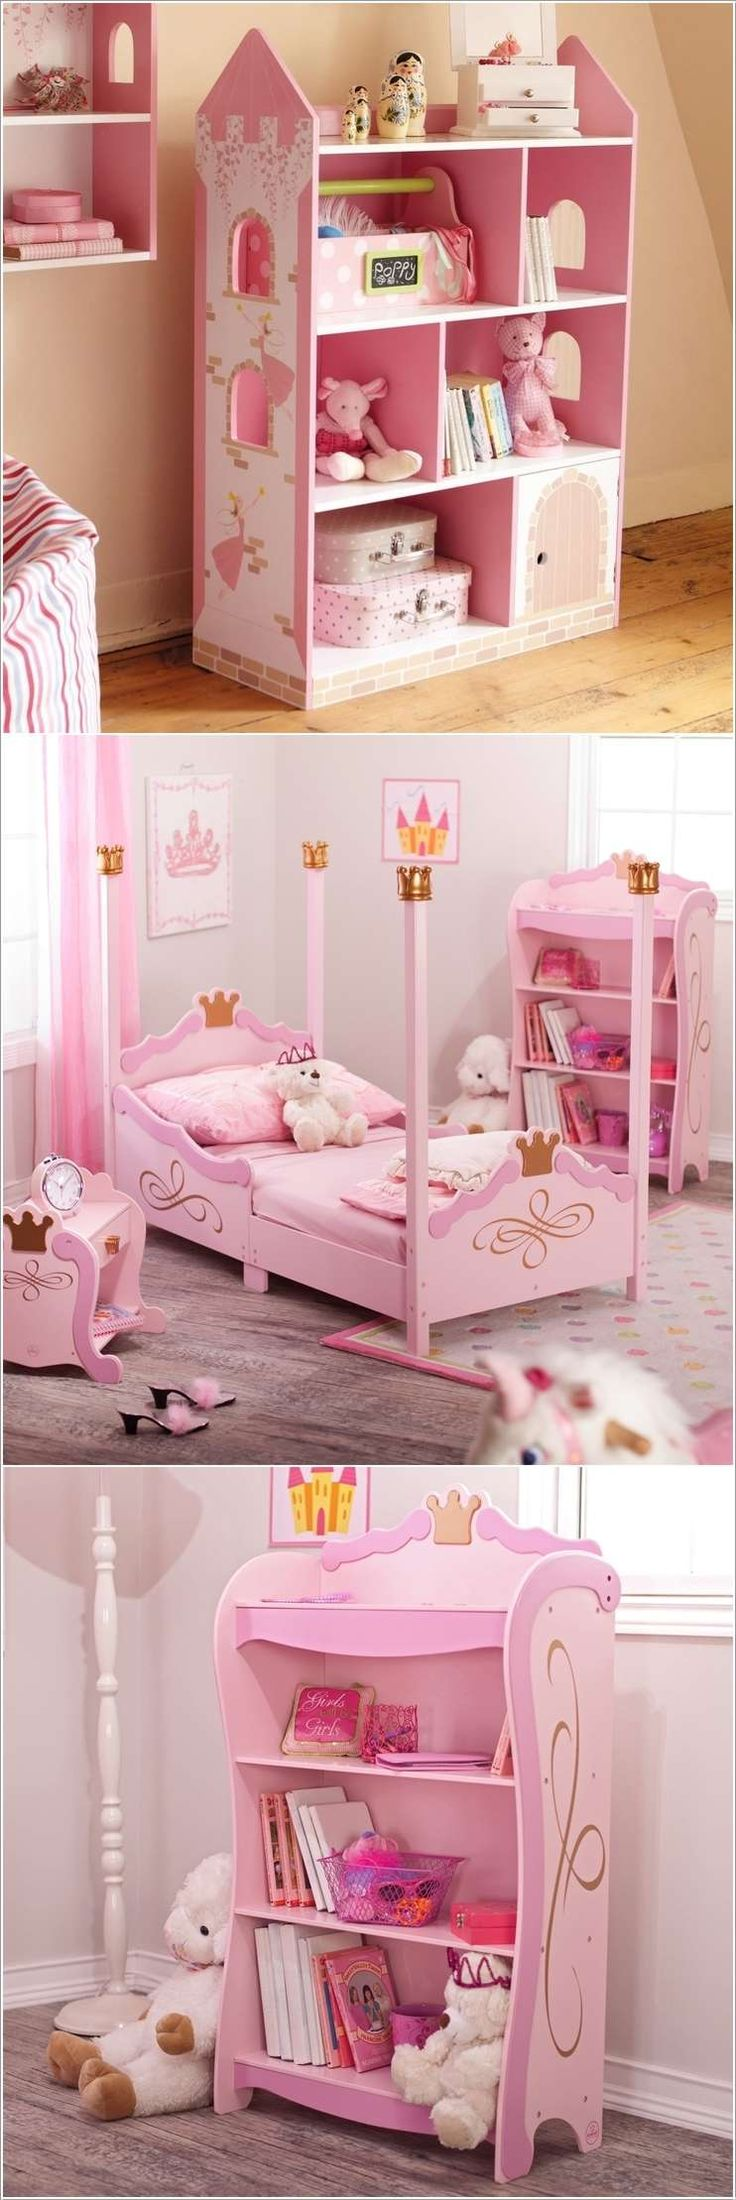 17 Best ideas about Princess Room Decor on Pinterest